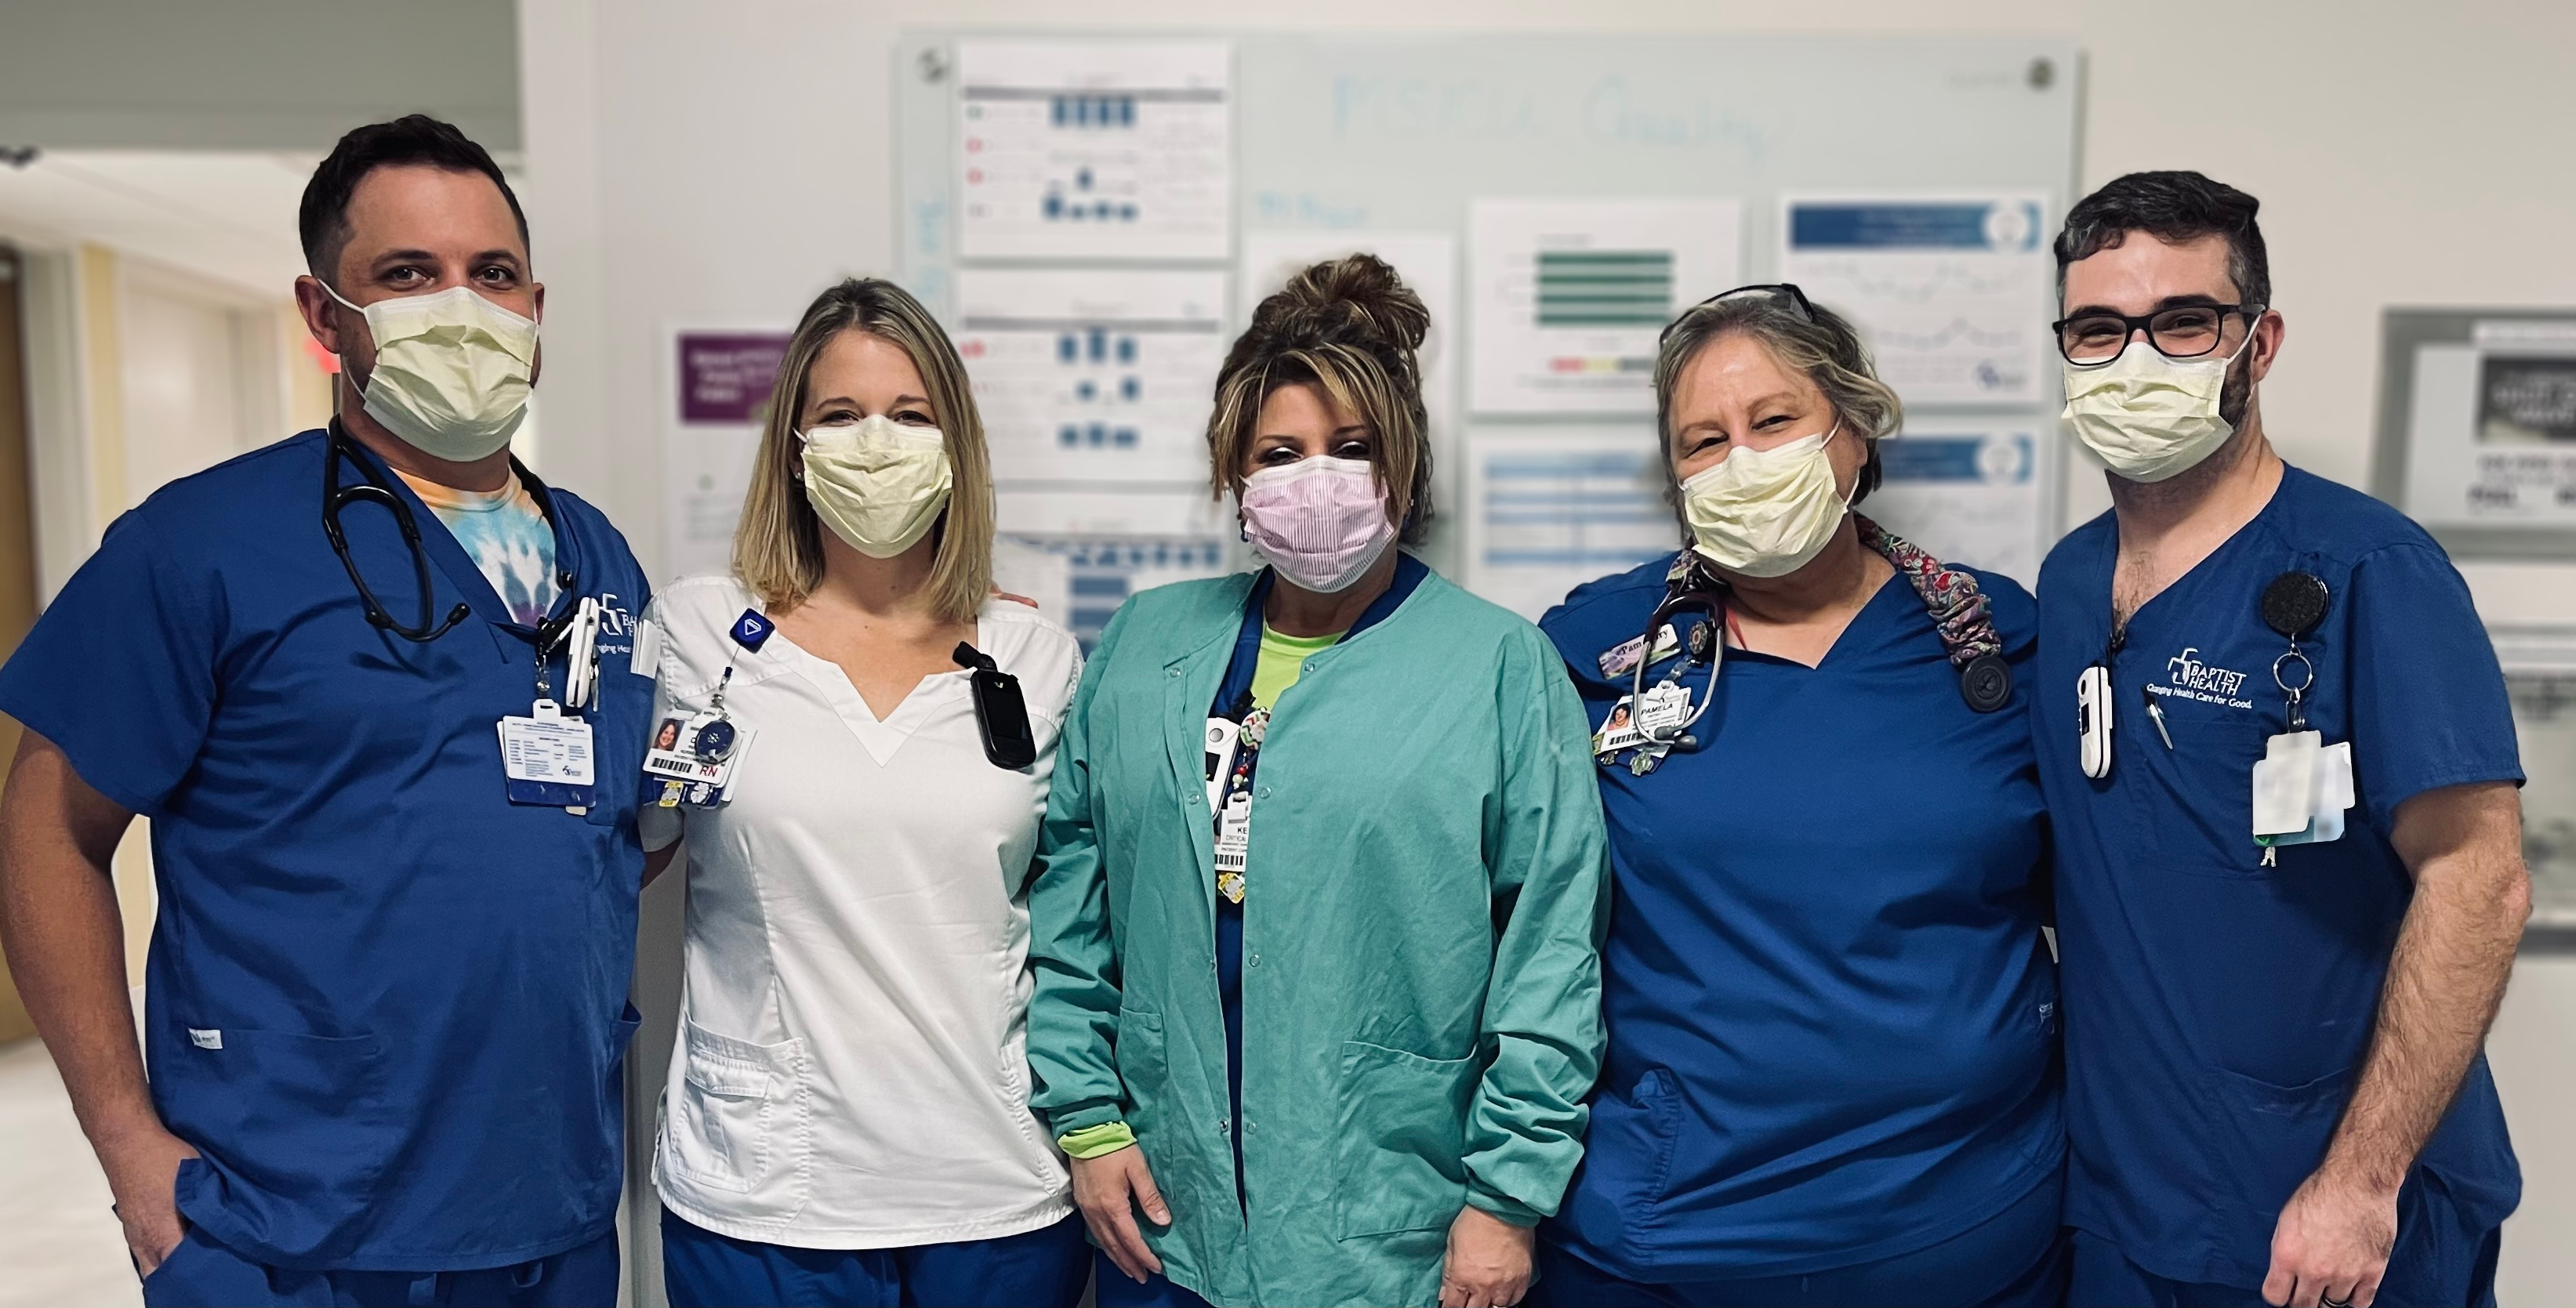 Caryn Parkhurst (second from left) and her ICU colleagues have all been vaccinated against the coronavirus.